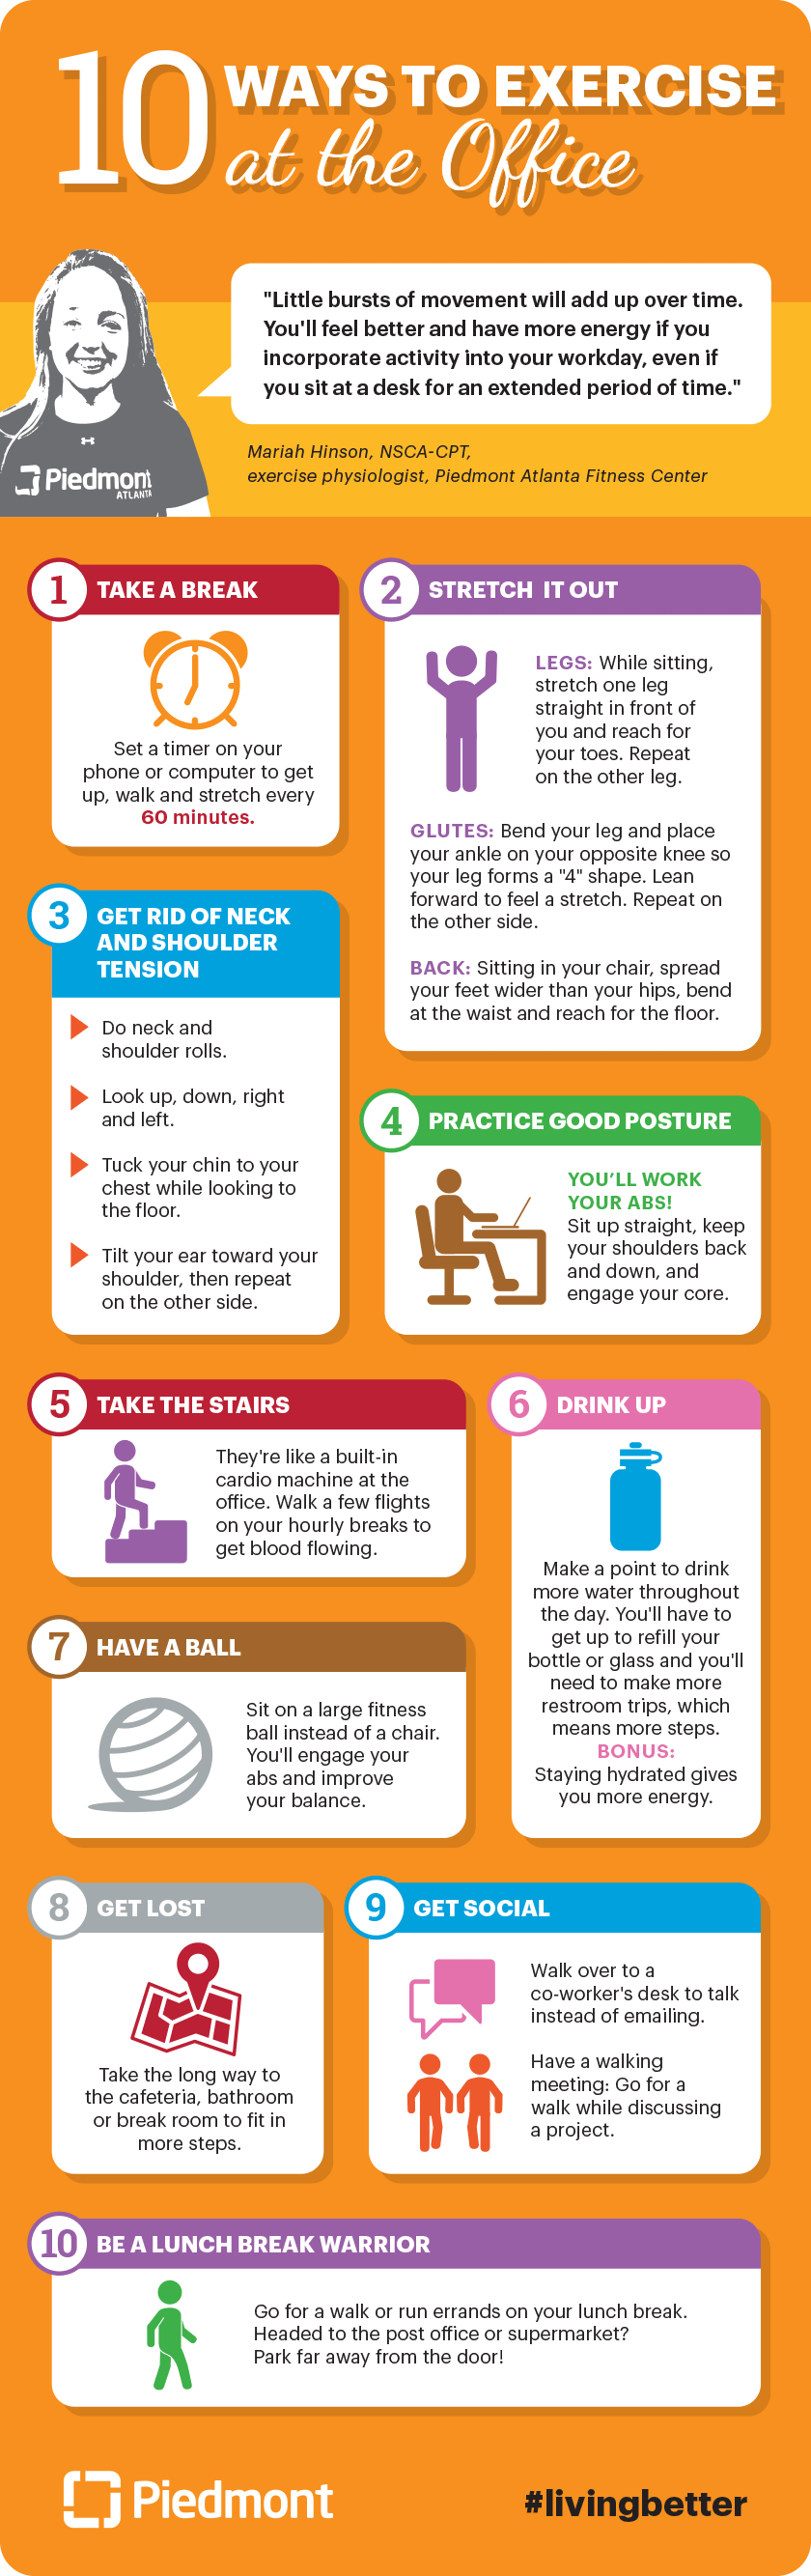 10 ways to exercise at the office